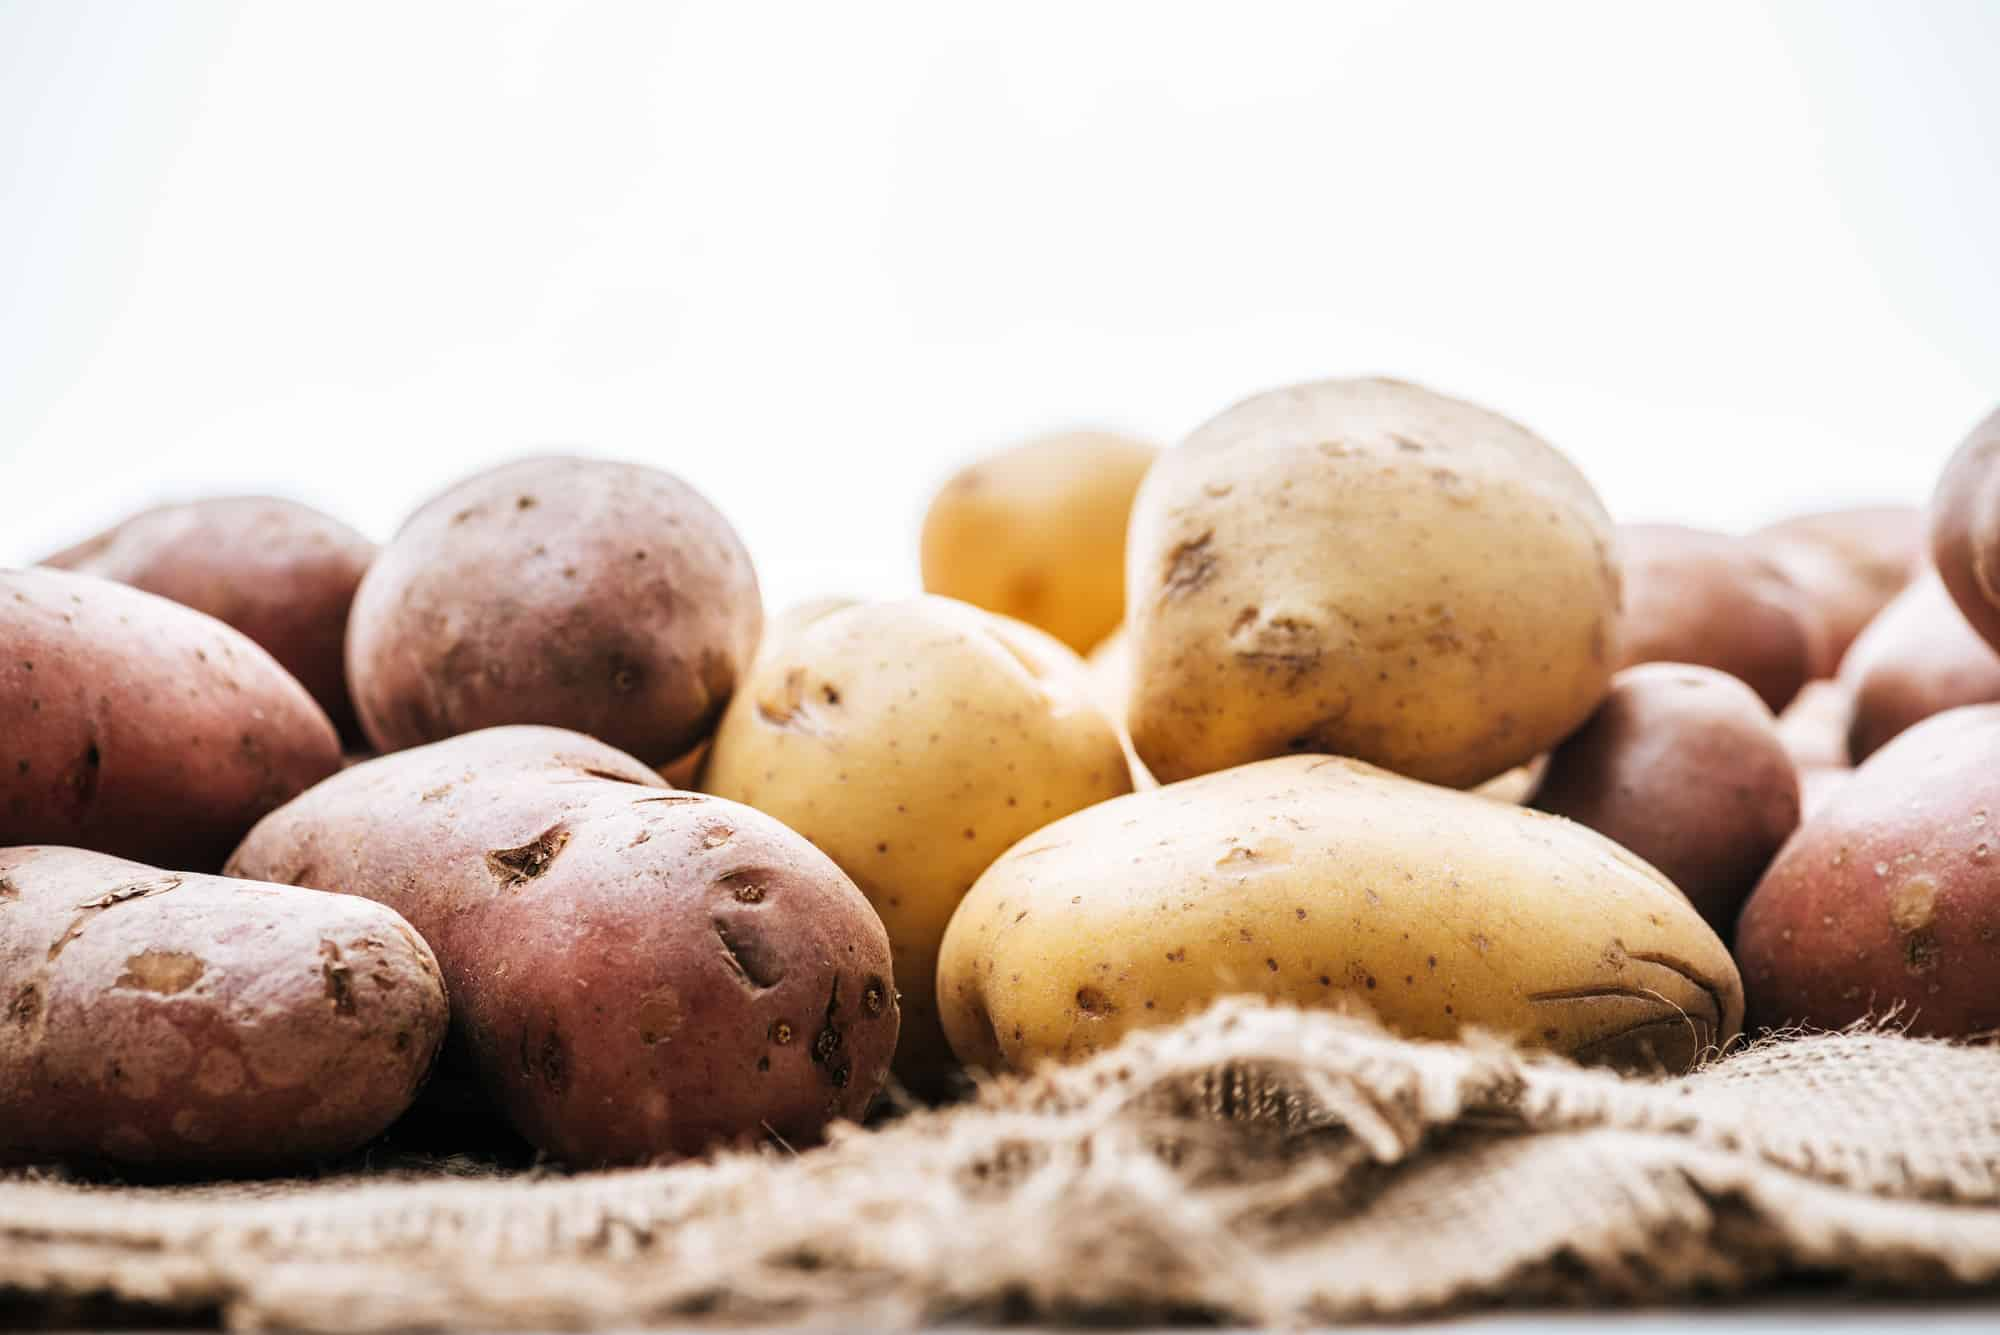 storing potatoes in a sack